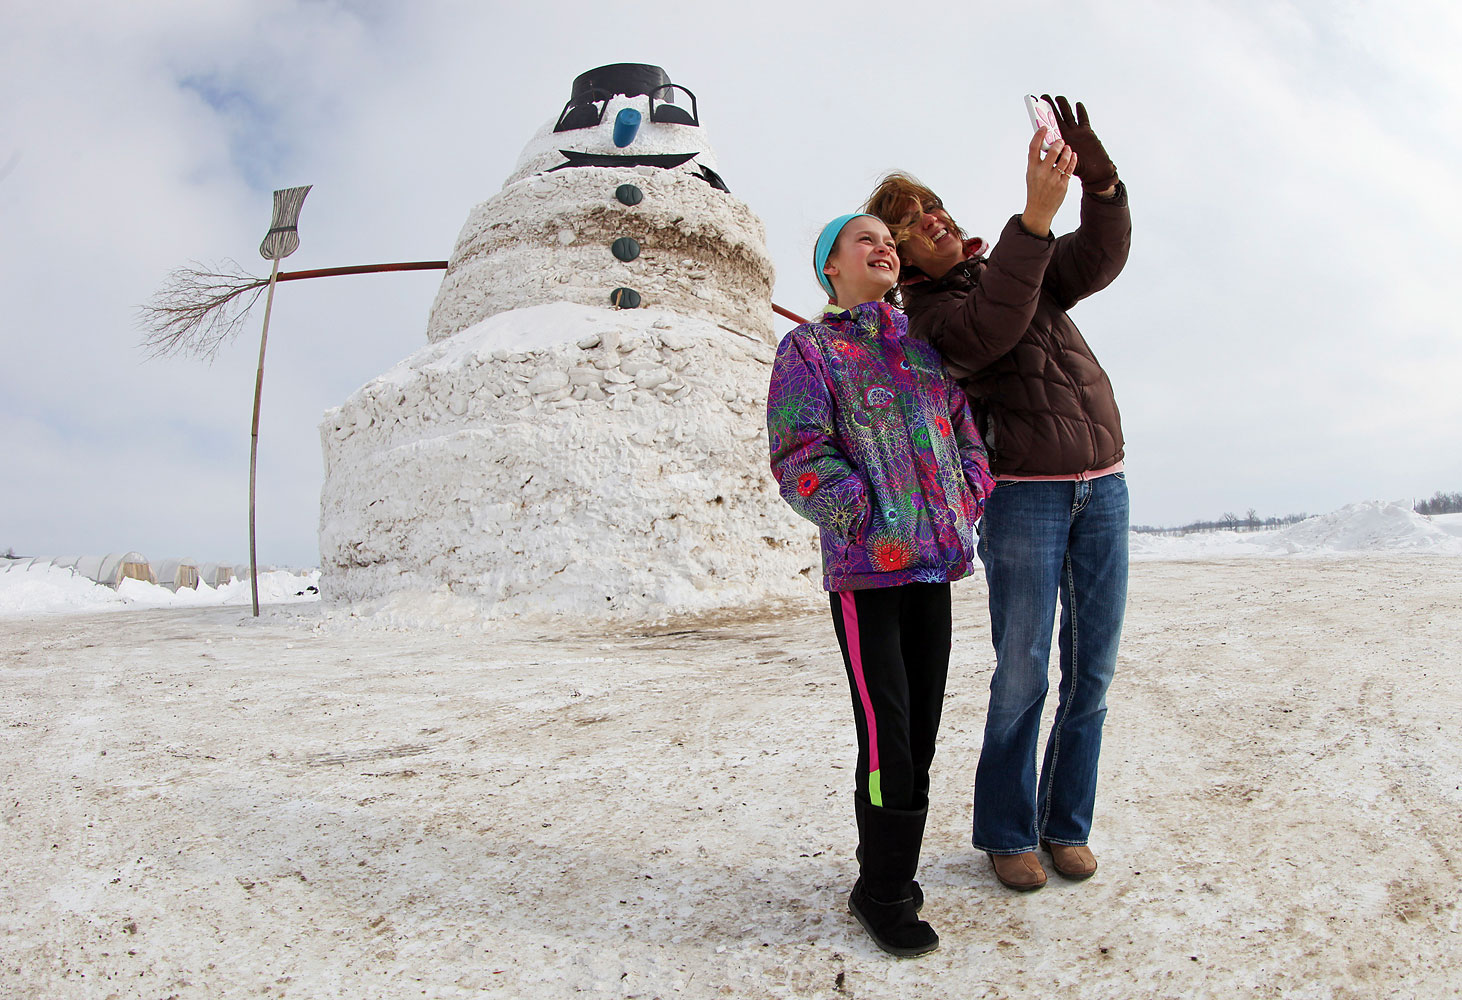 Chris Schueller and  daughter Hope photograph themselves in front of a 50-foot snowman named  Granddaddy  in Gilman, Minnesota, March 6, 2014.